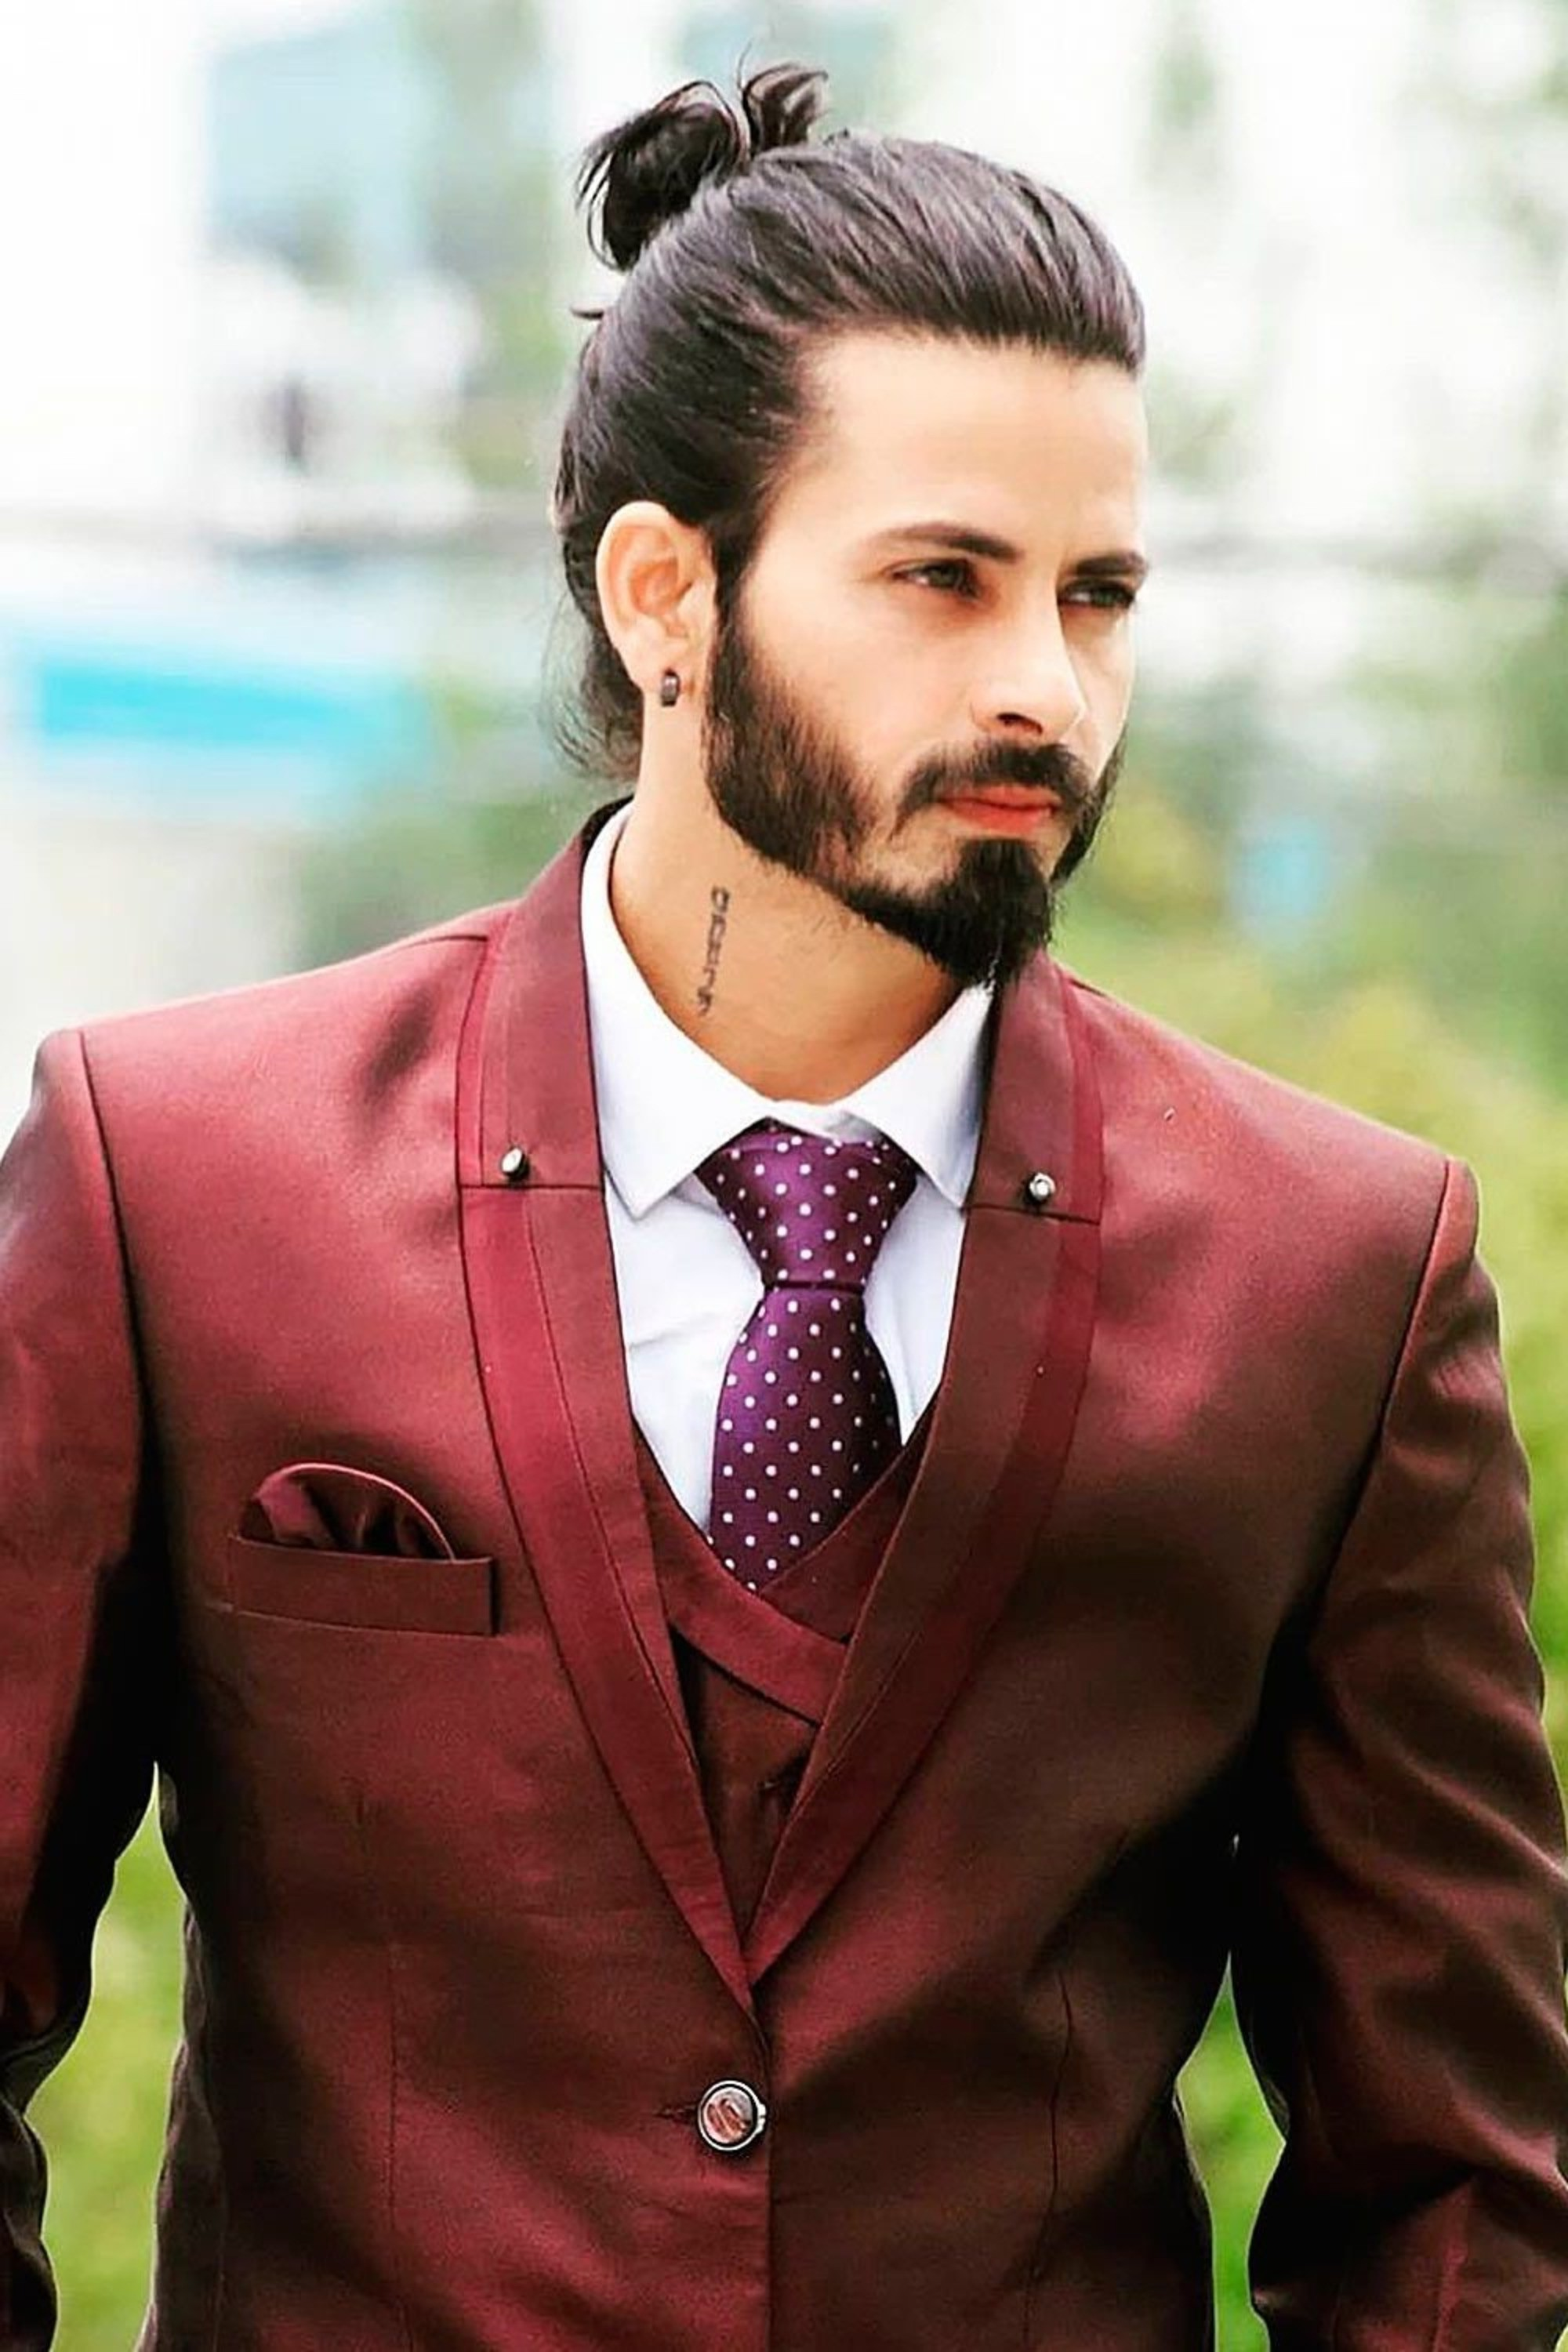 A Man Bun cool hairstyle for handsome men.